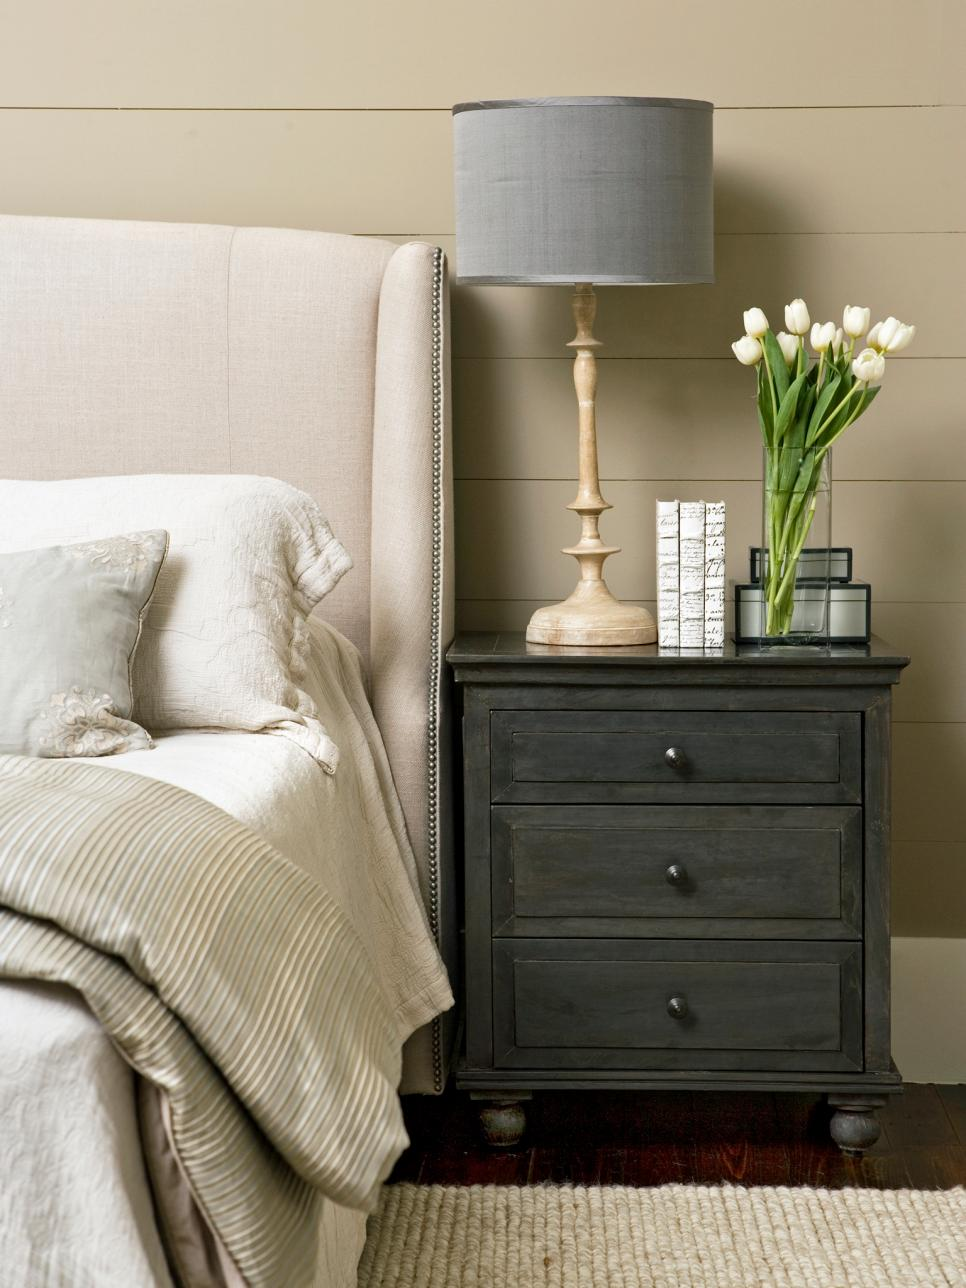 Resultado de imagem para bedroom nightstand bedroom Decorating Tricks for Your Bedroom original Linda McDougal gray nightstand neutral bedroom v